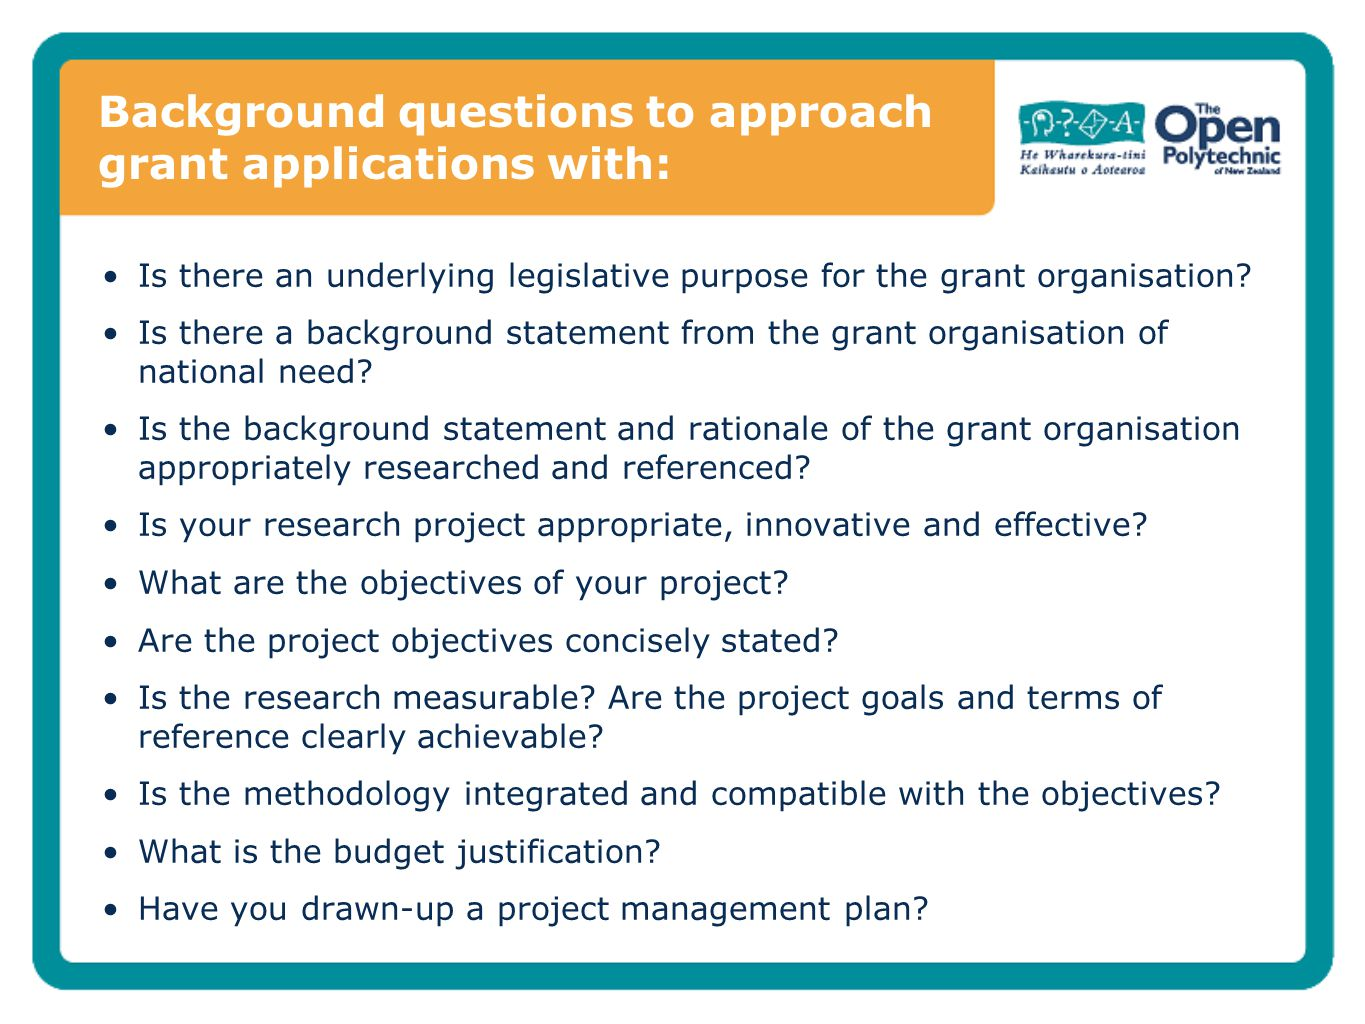 Background questions to approach grant applications with: Is there an underlying legislative purpose for the grant organisation? Is there a background